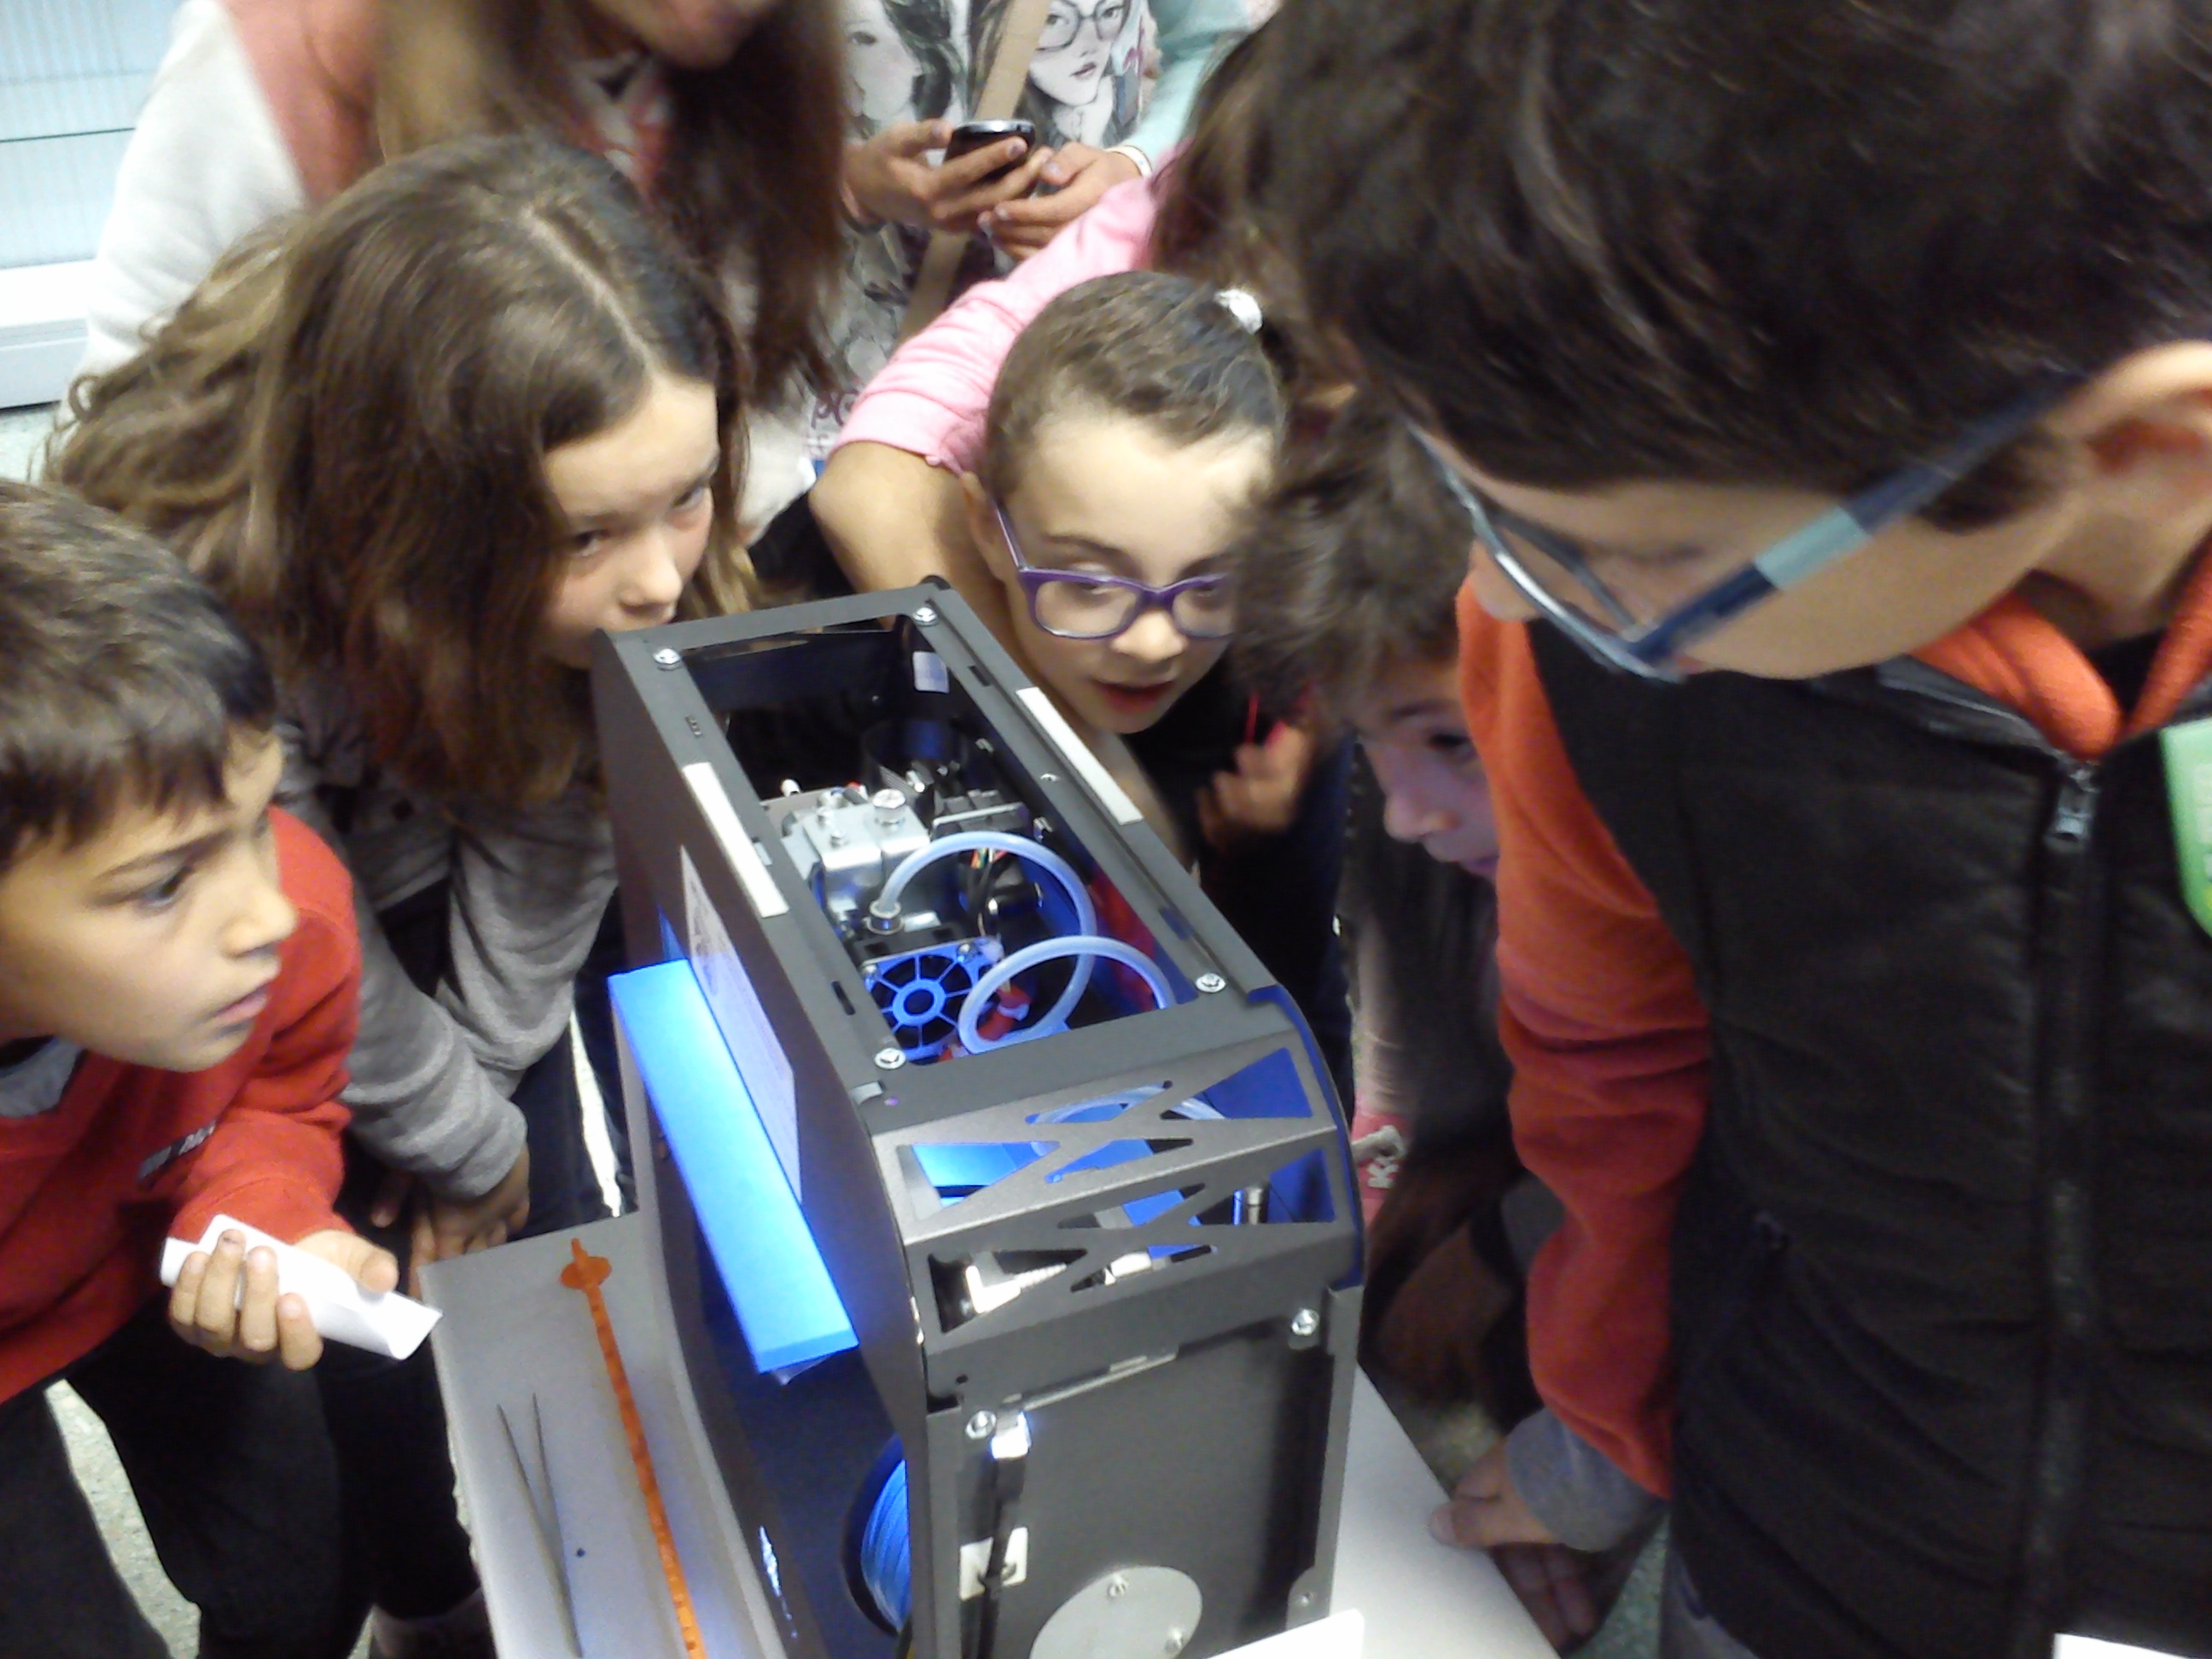 3D printing: A New Frontier for Education